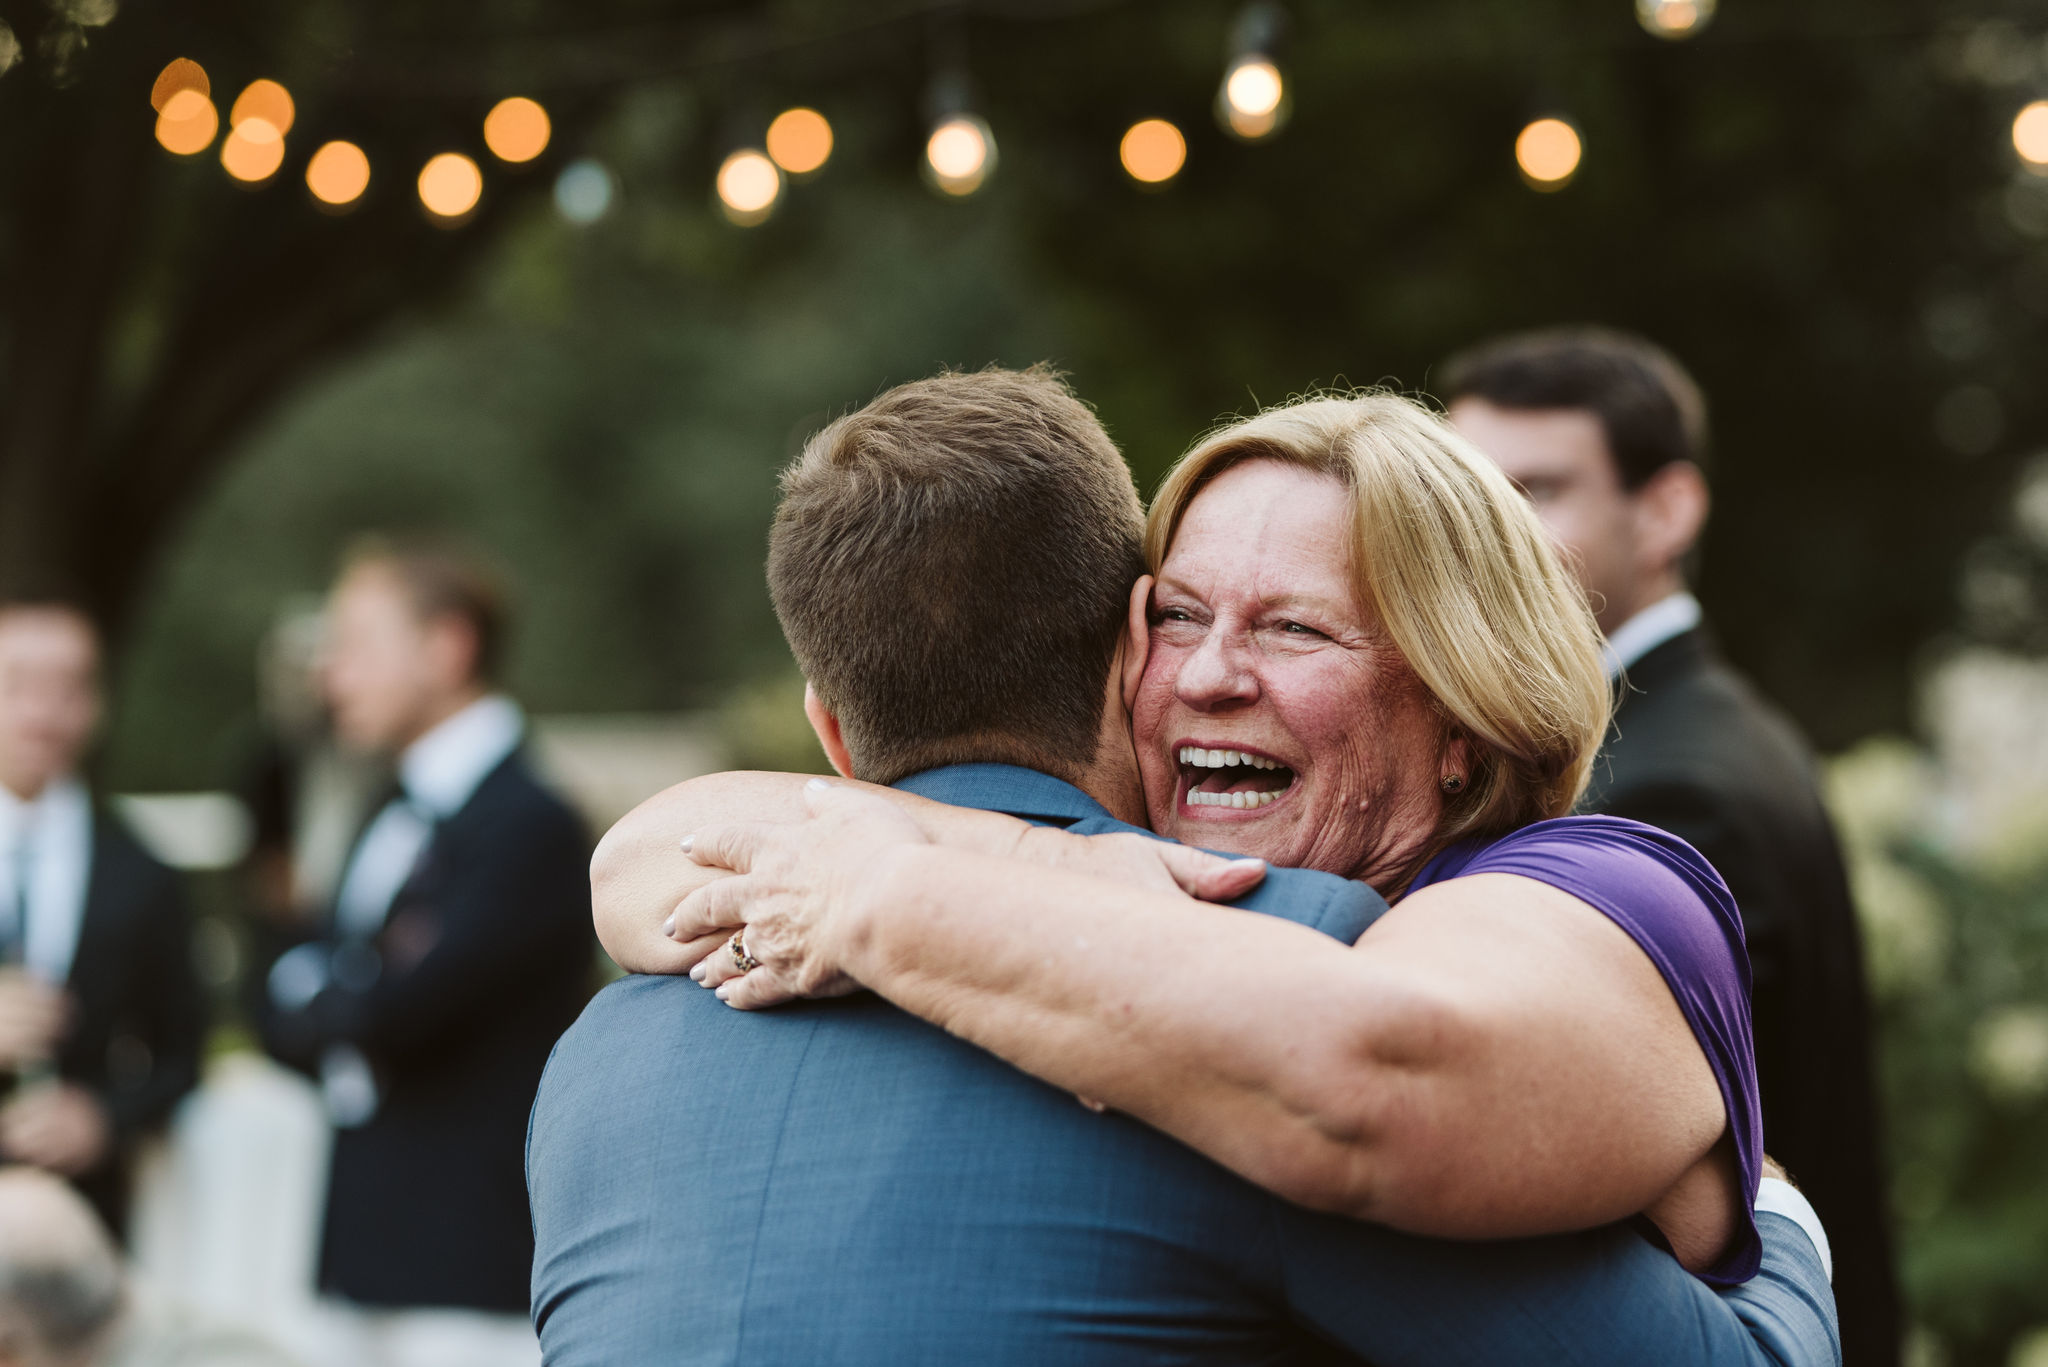 Phoenix Maryland, Baltimore Wedding Photographer, Eagle's Nest Country Club, Classic, Romantic, Family Hugging Groom, Wedding Guests Congratulating Groom